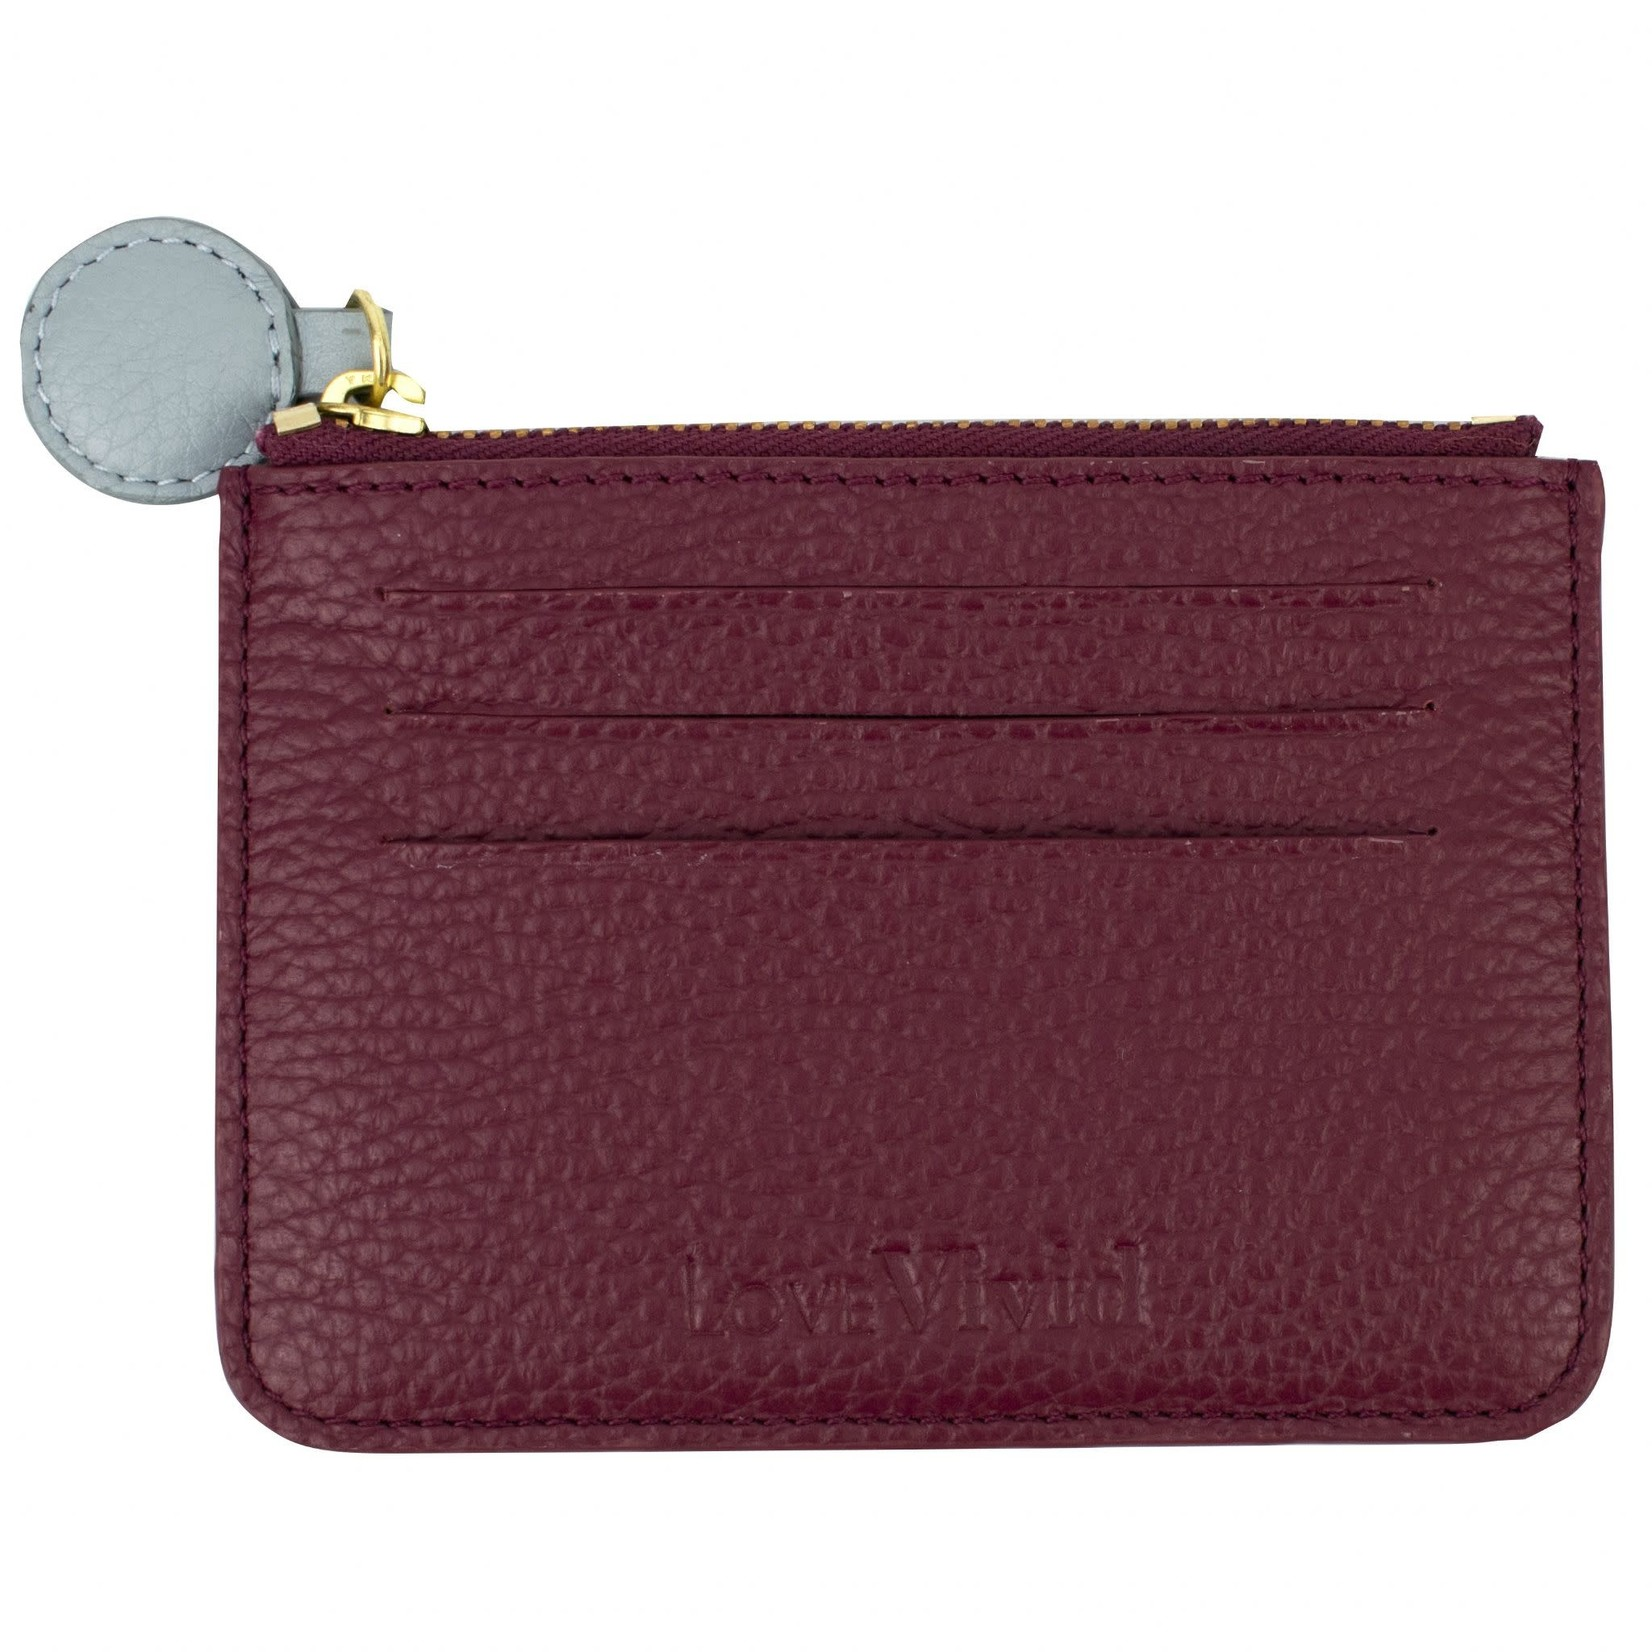 Vivid Credit Card Wallet in Plum and Sky